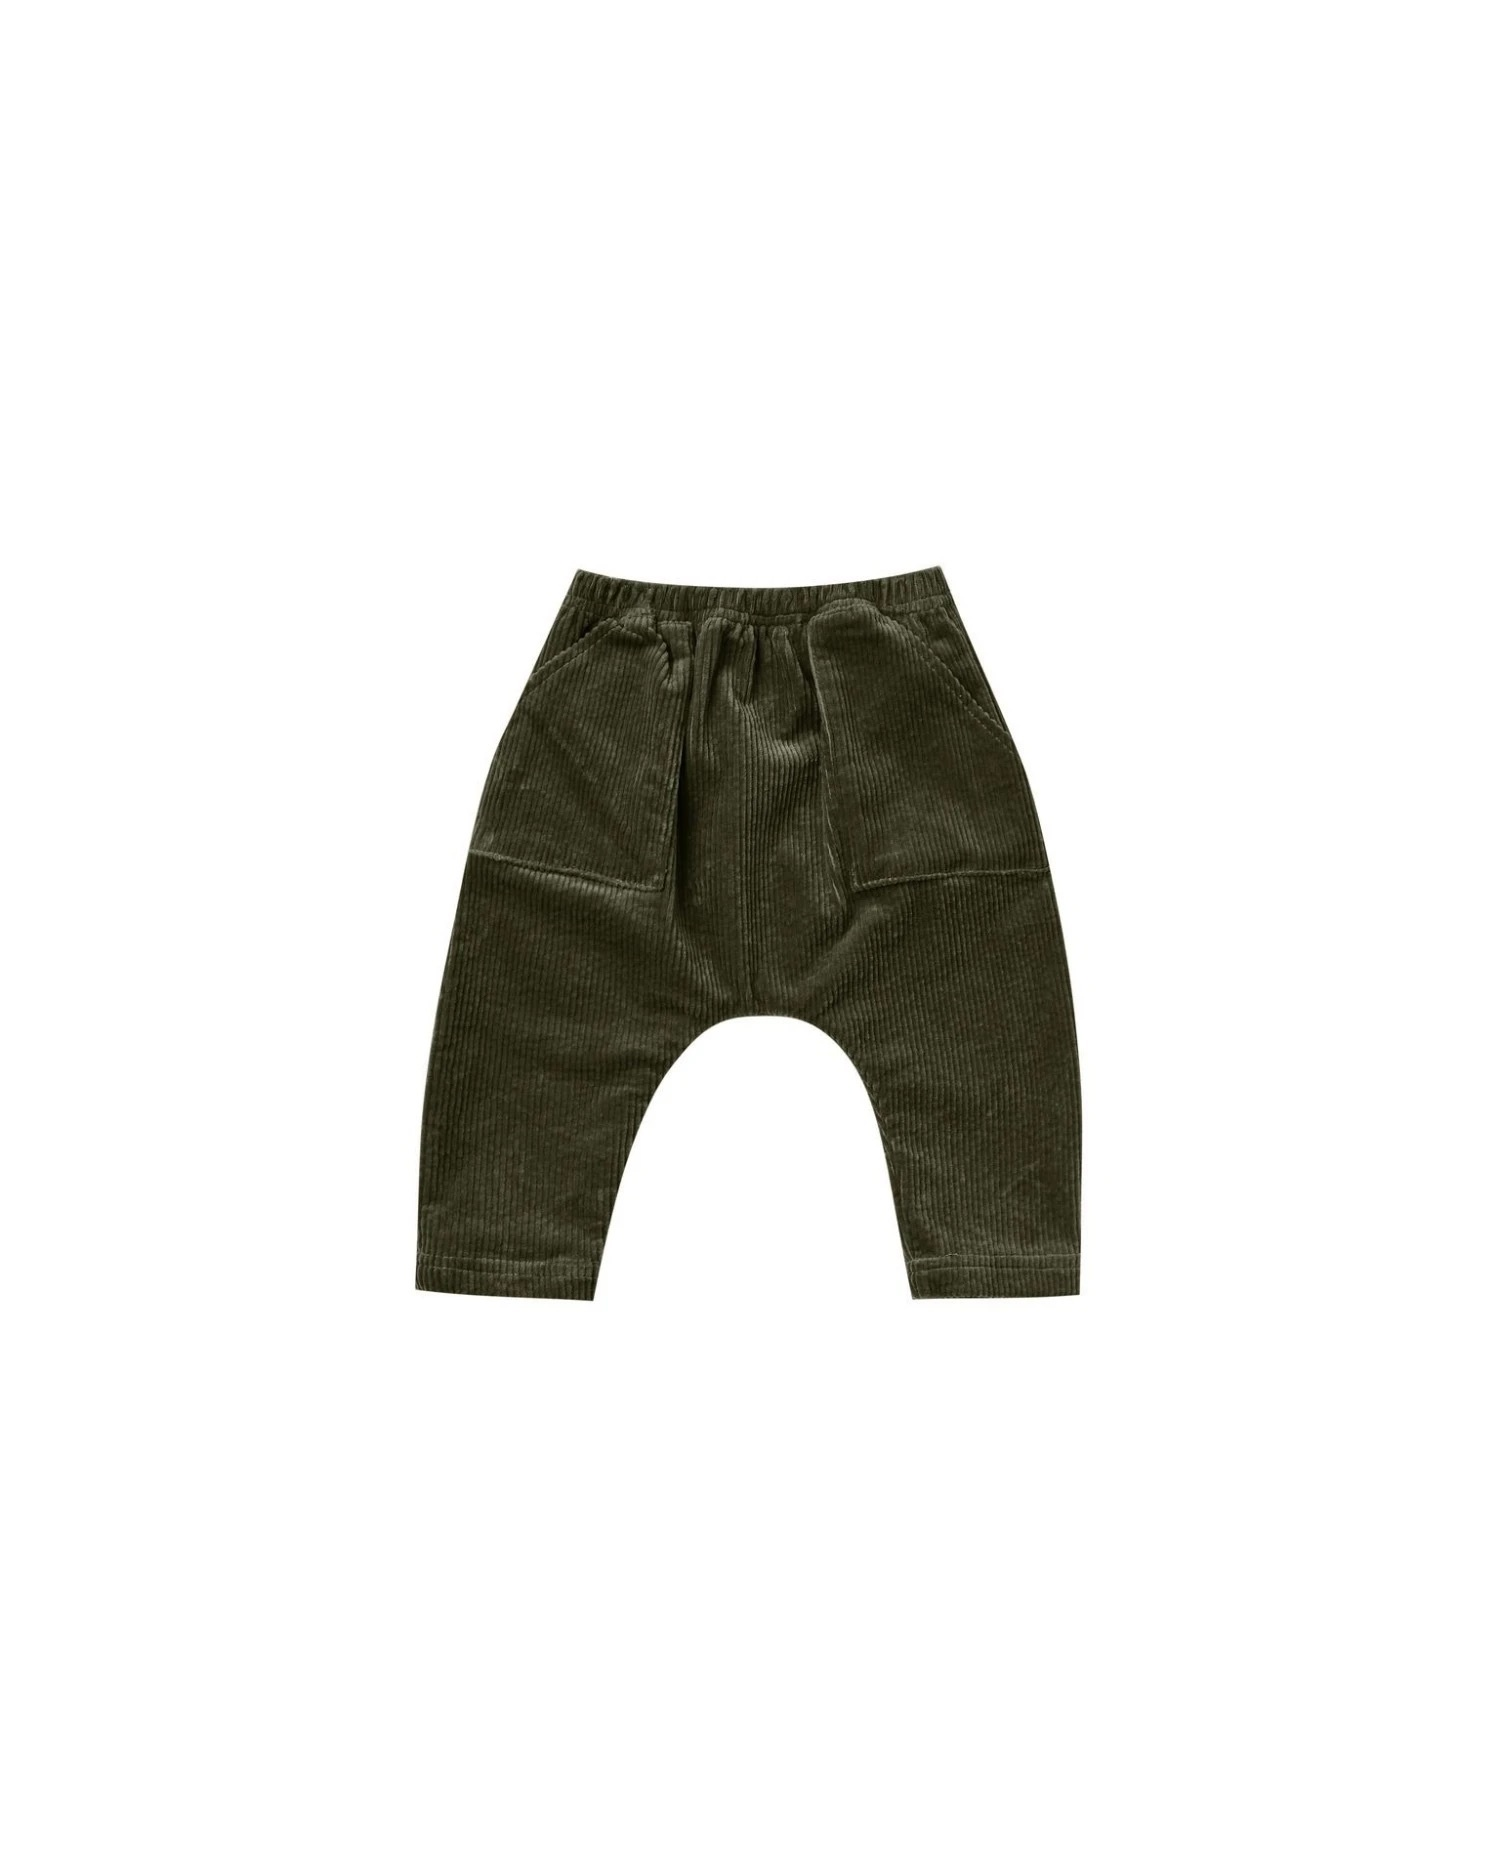 Rylee + Cru - RC RC BA - Forest Utility Harem Pant